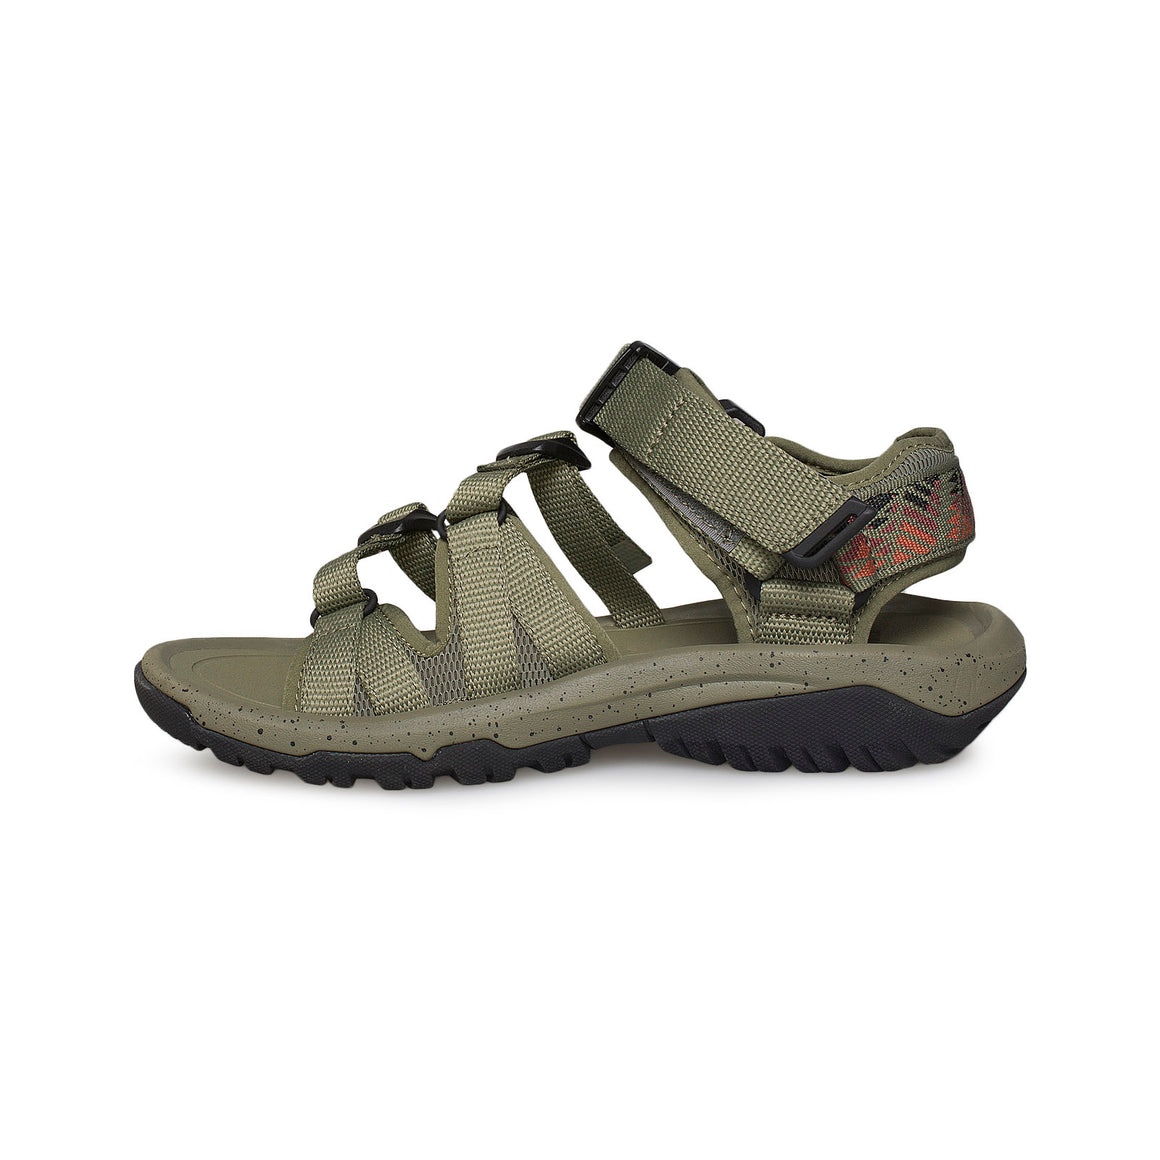 Teva Hurricane XLT 2 Alp Black Olive Sandals - Men's